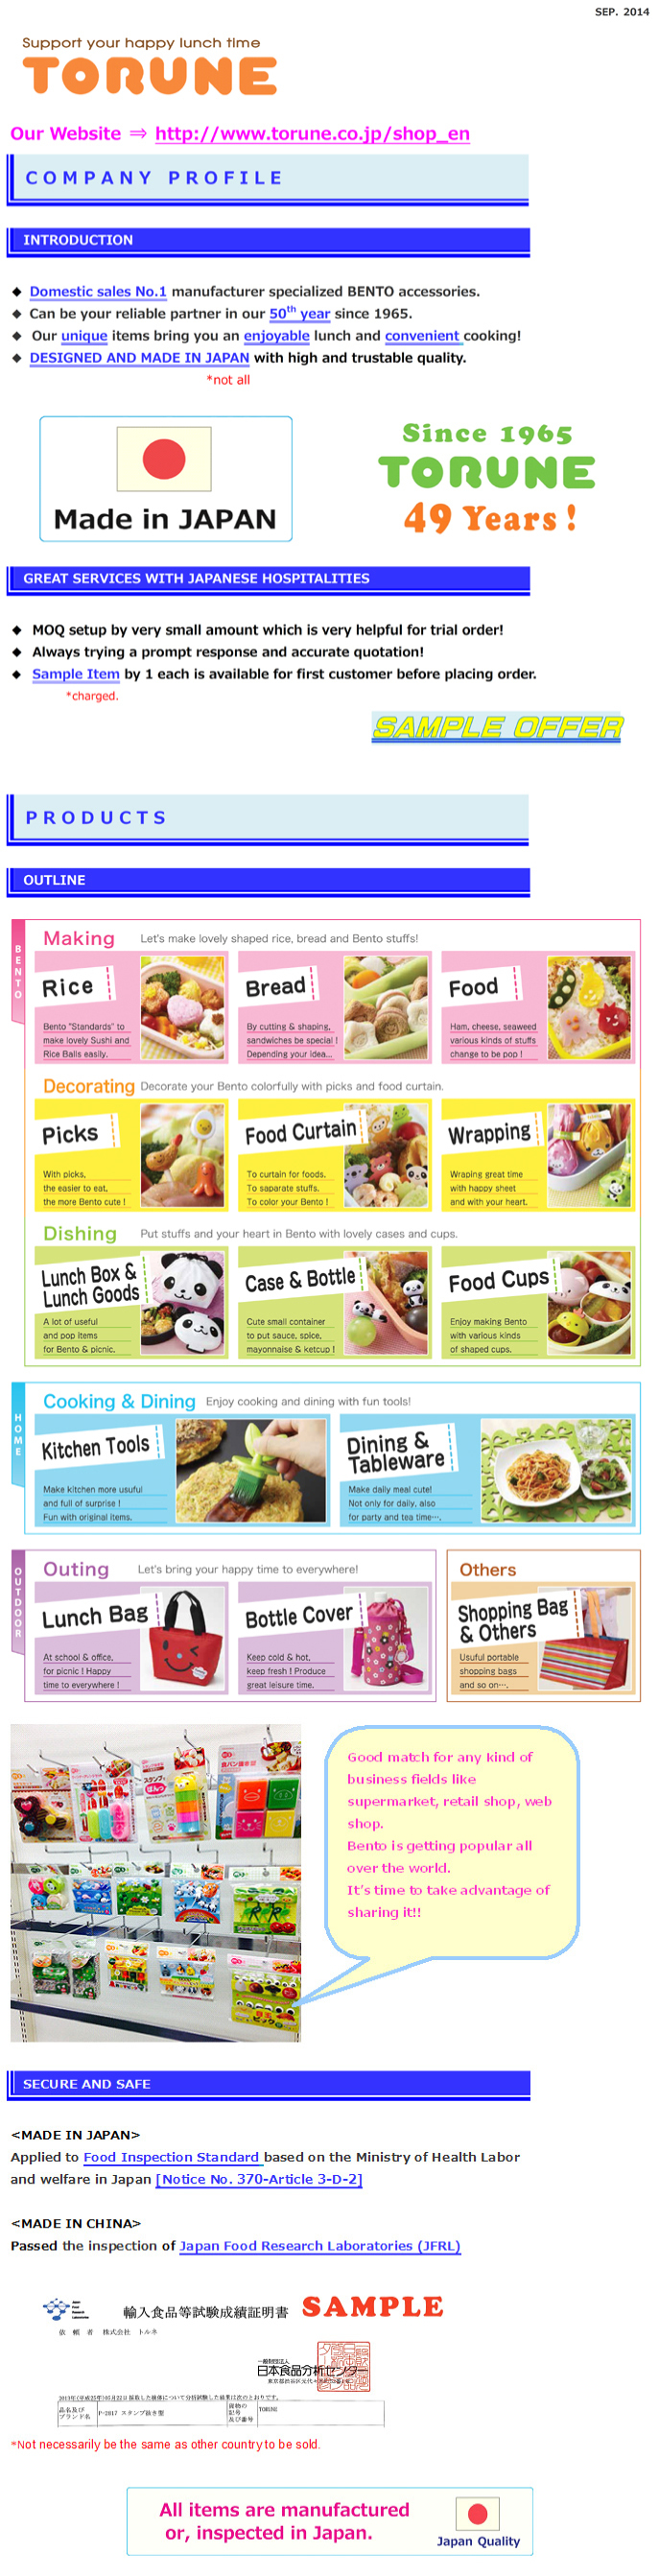 Business Idea Food kids costumes halloween Film Sheet On Food Anti-bacterial